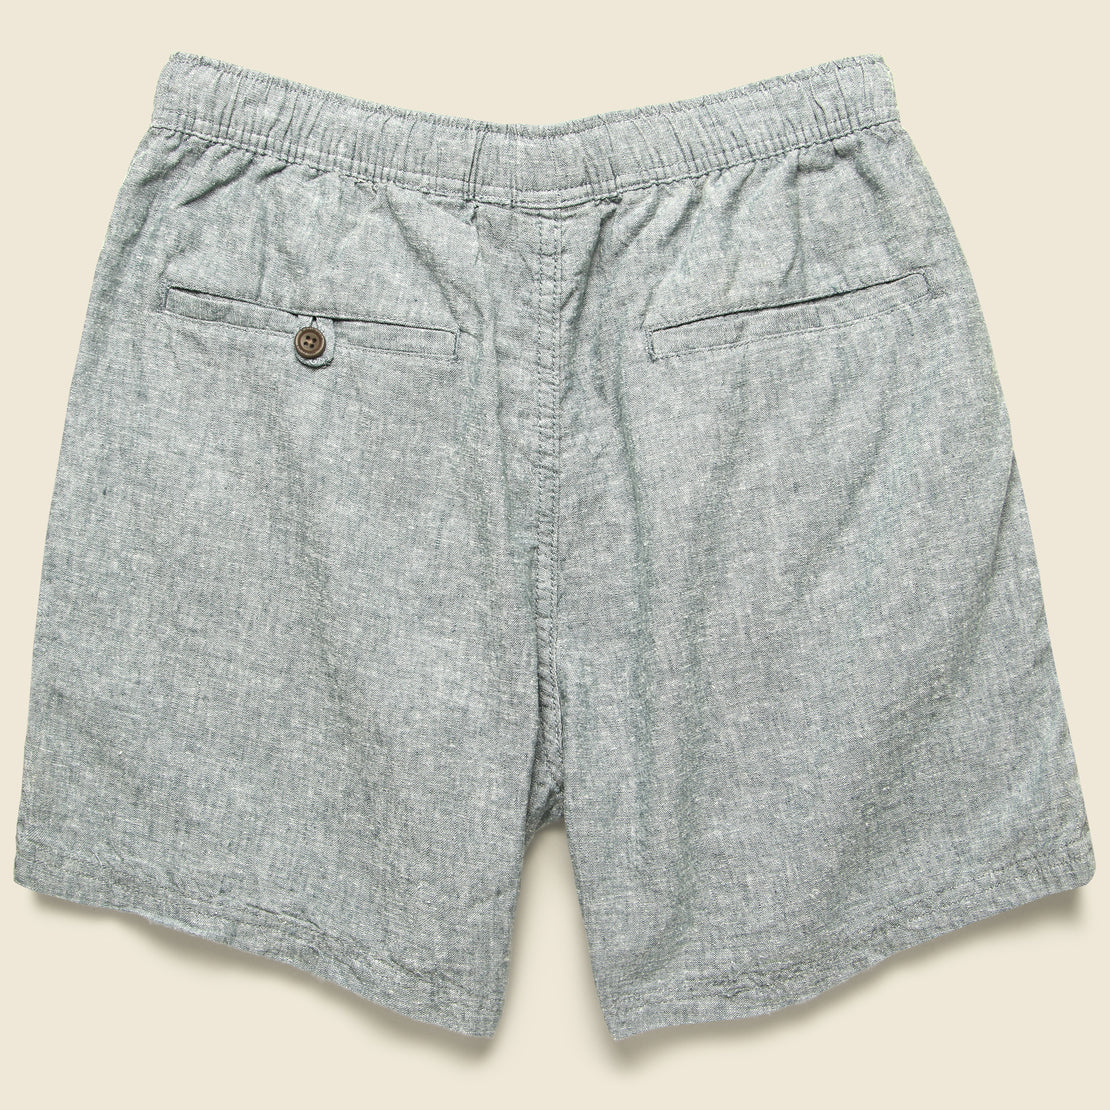 Isaiah Local Short - Steel Blue